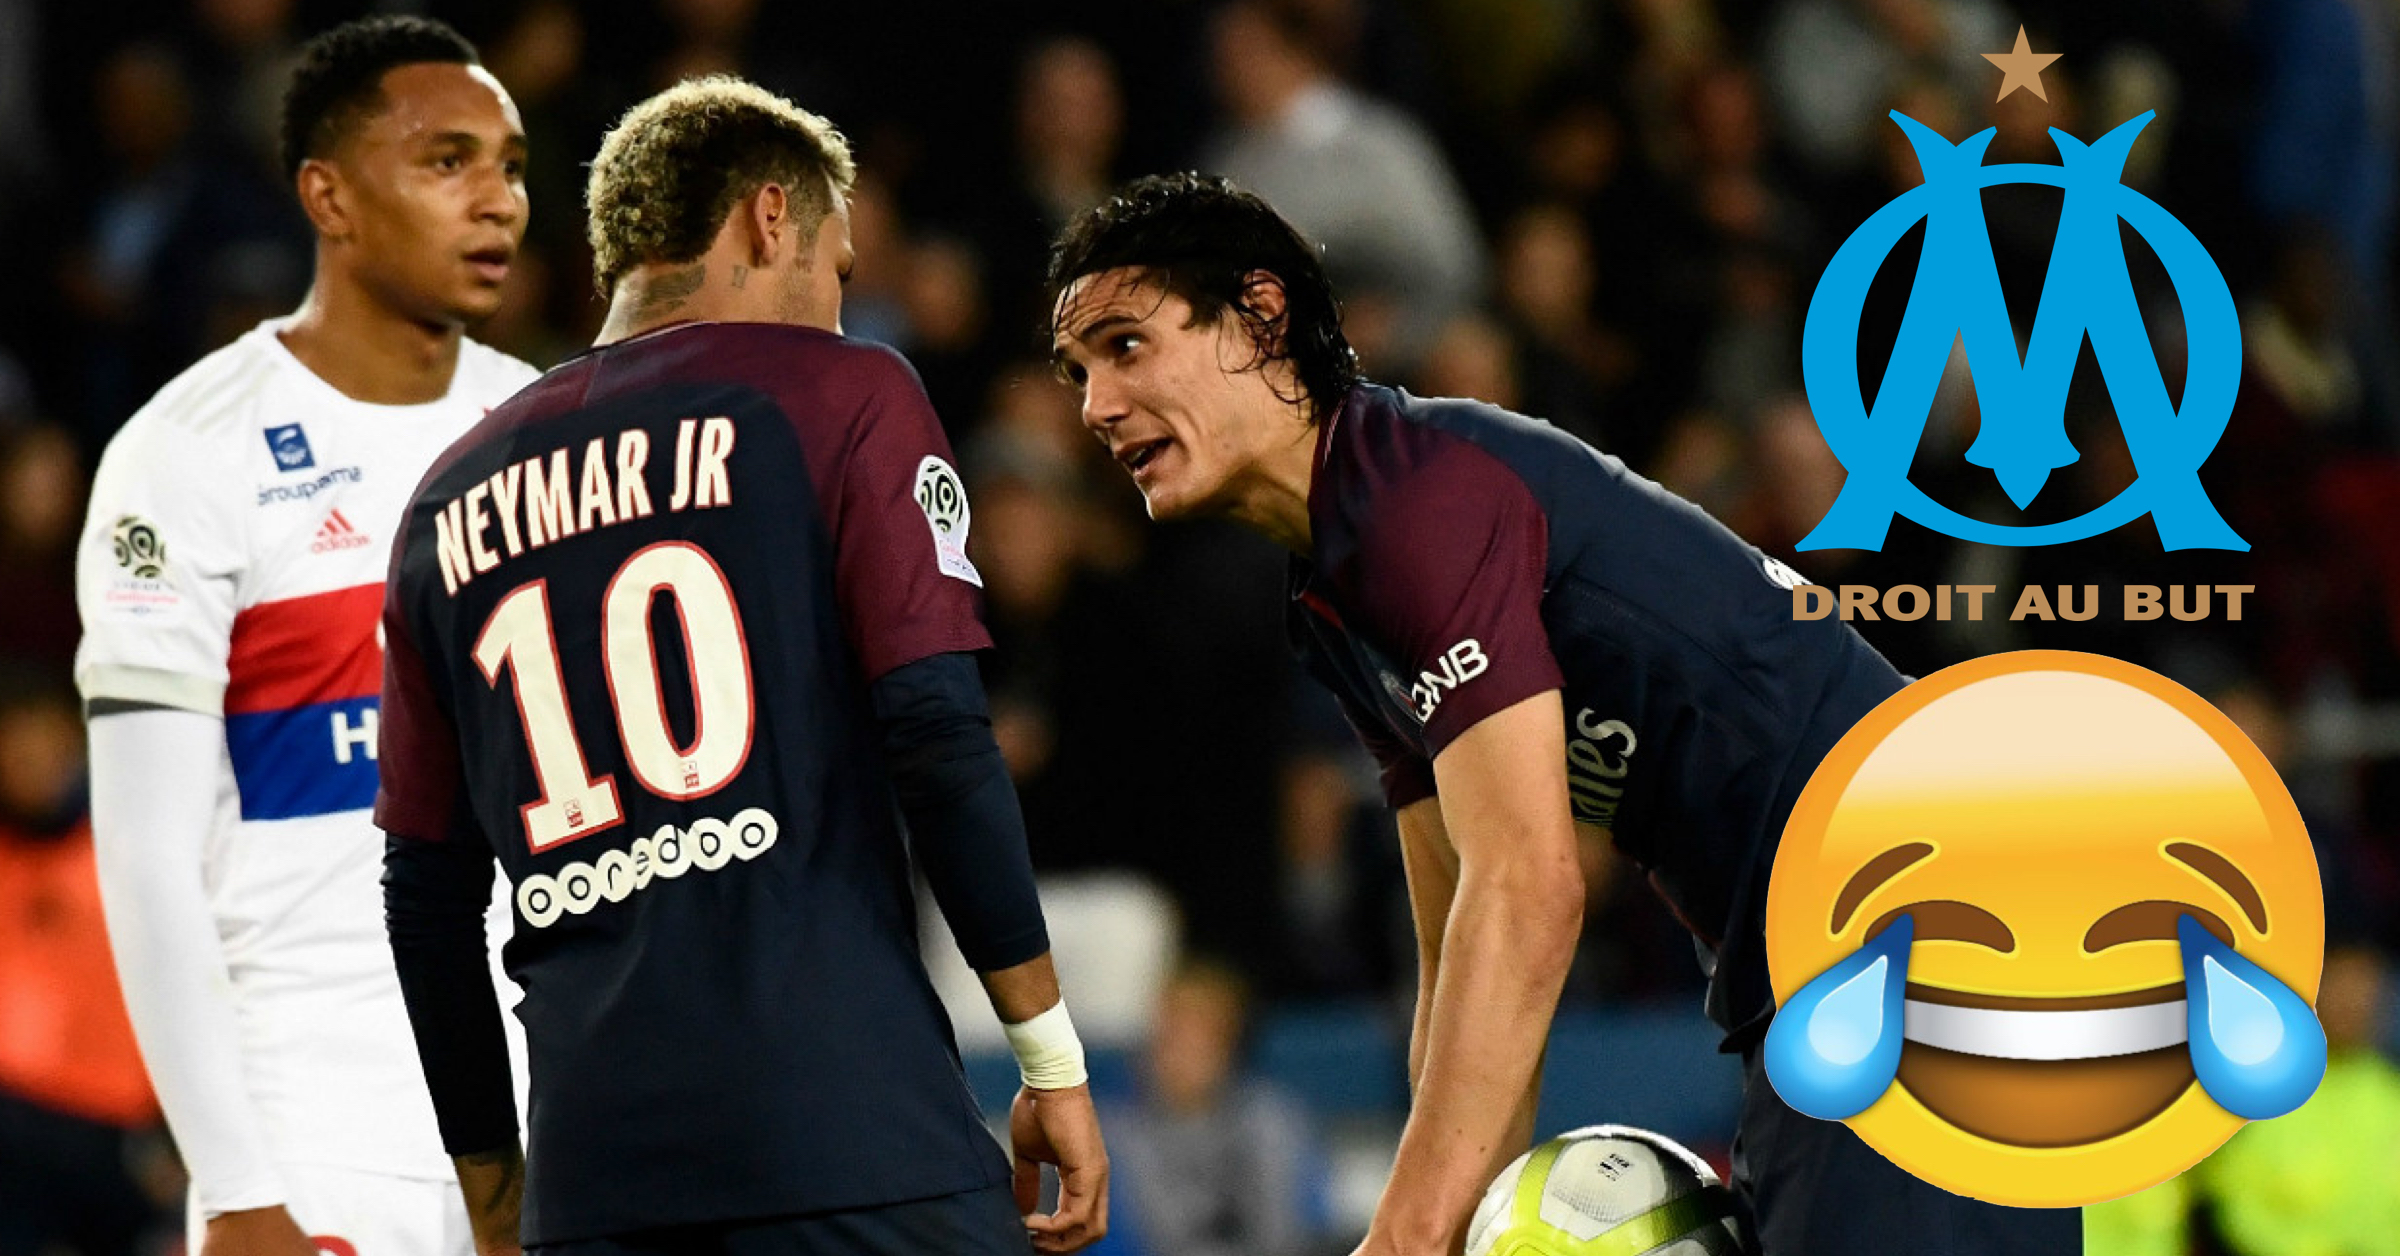 Olympique Marseille Mercilessly Troll PSG About The Ridiculous Cavani/Neymar Situation